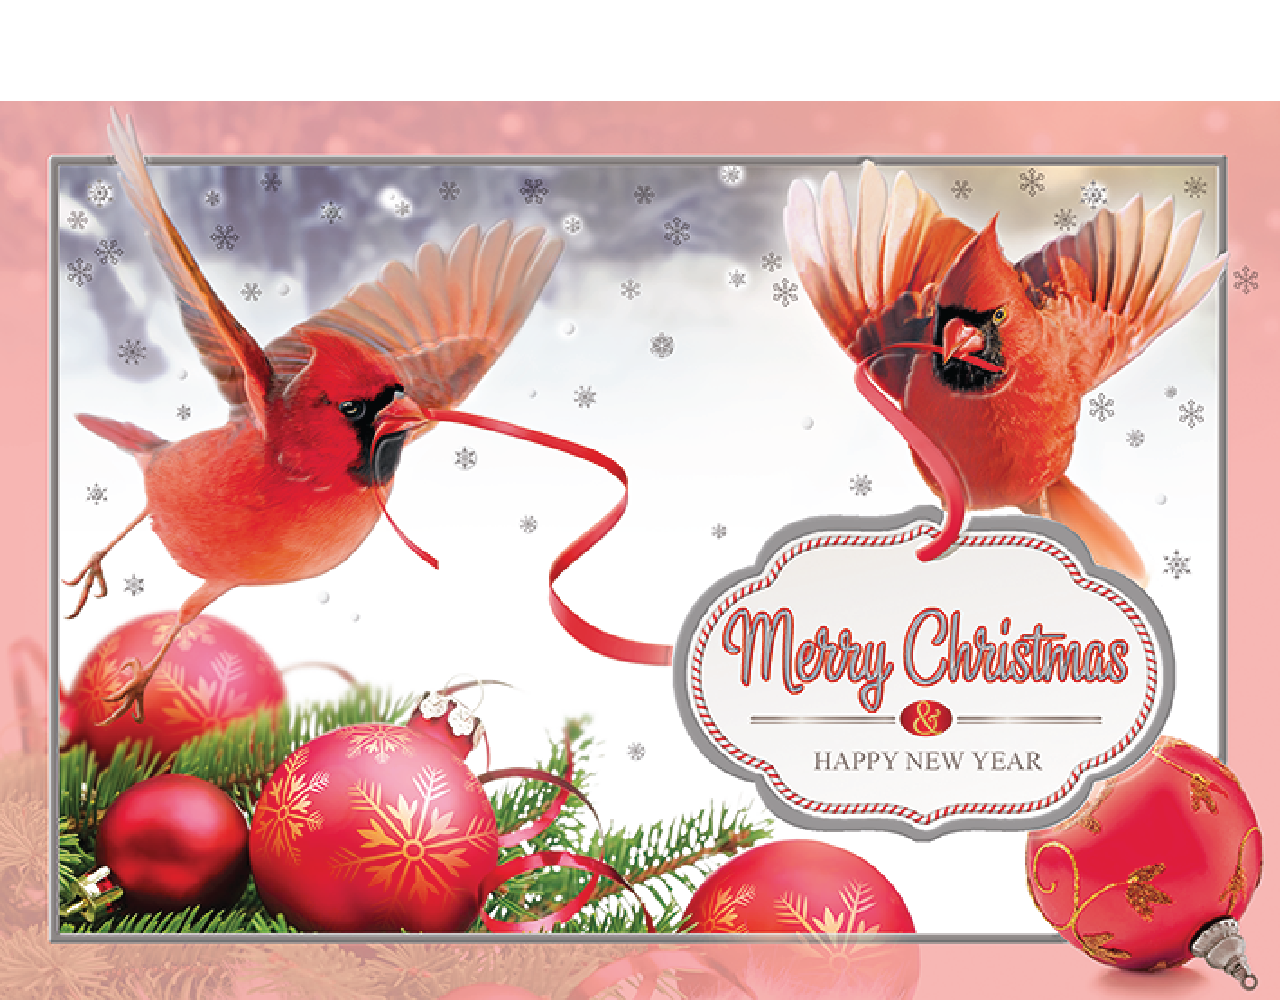 christmas card 5×7 inch GN.6009 ฿14.00